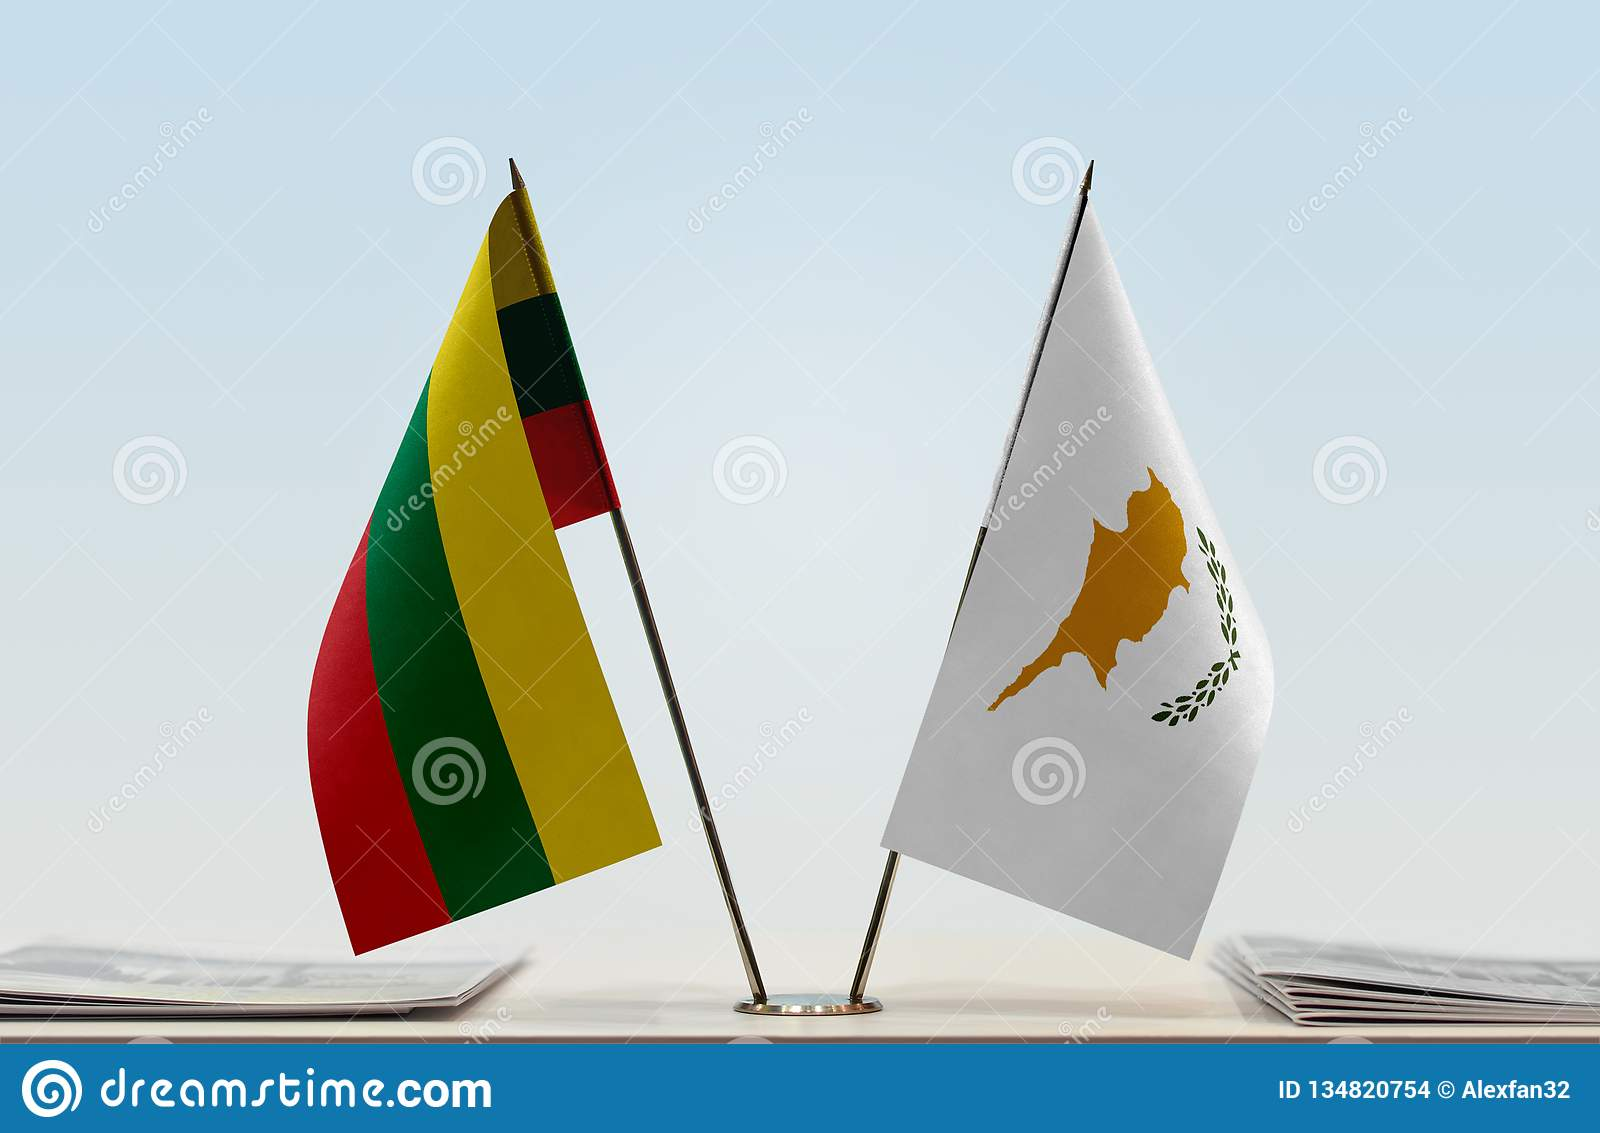 Flags of Lithuania and Cyprus